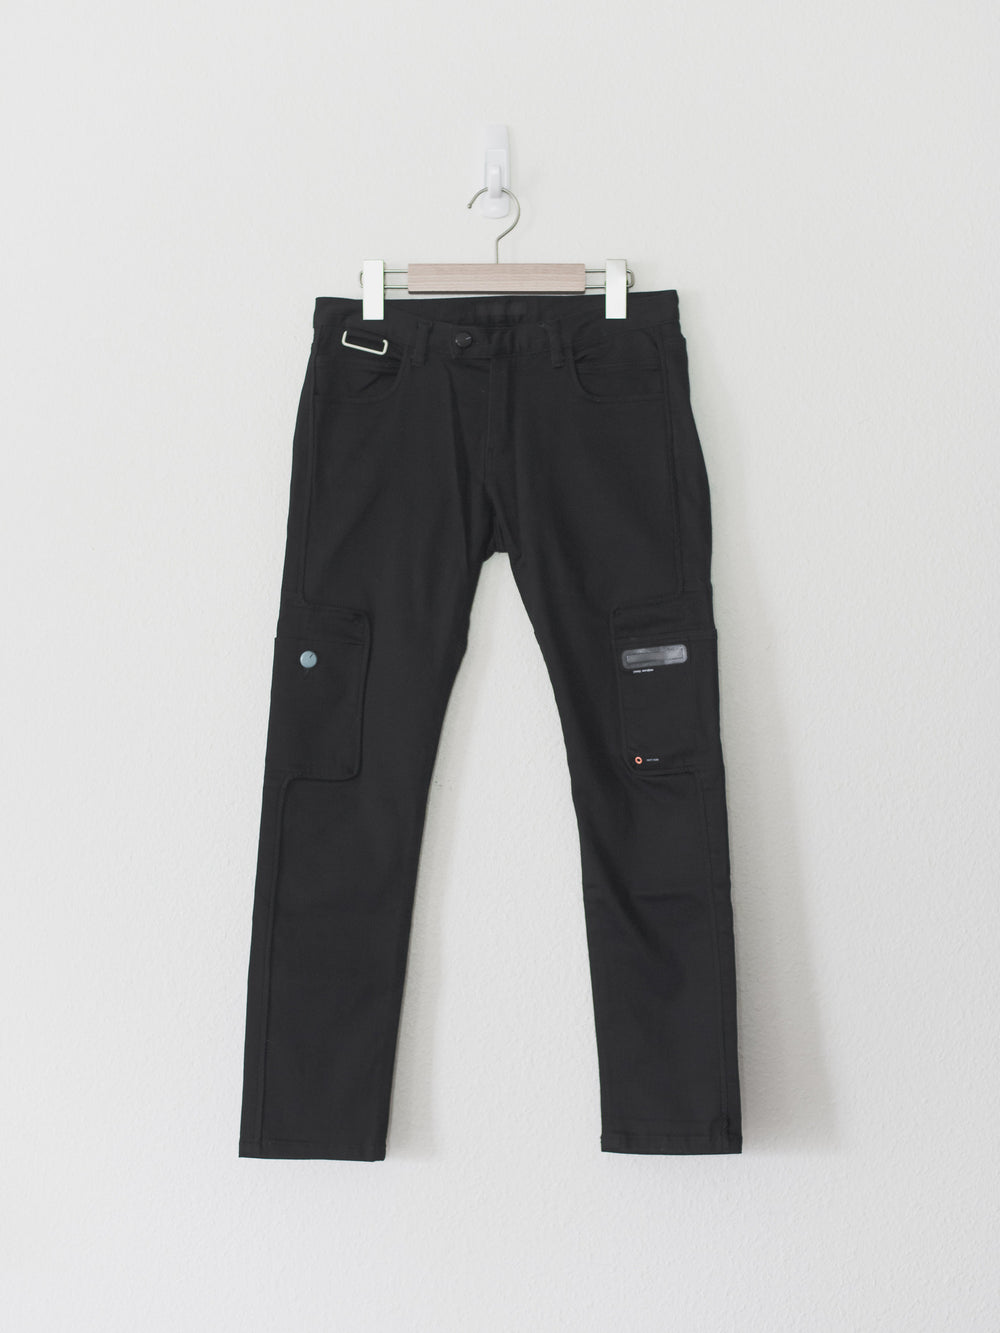 Undercover SS10 Less But Better Cargo Pants